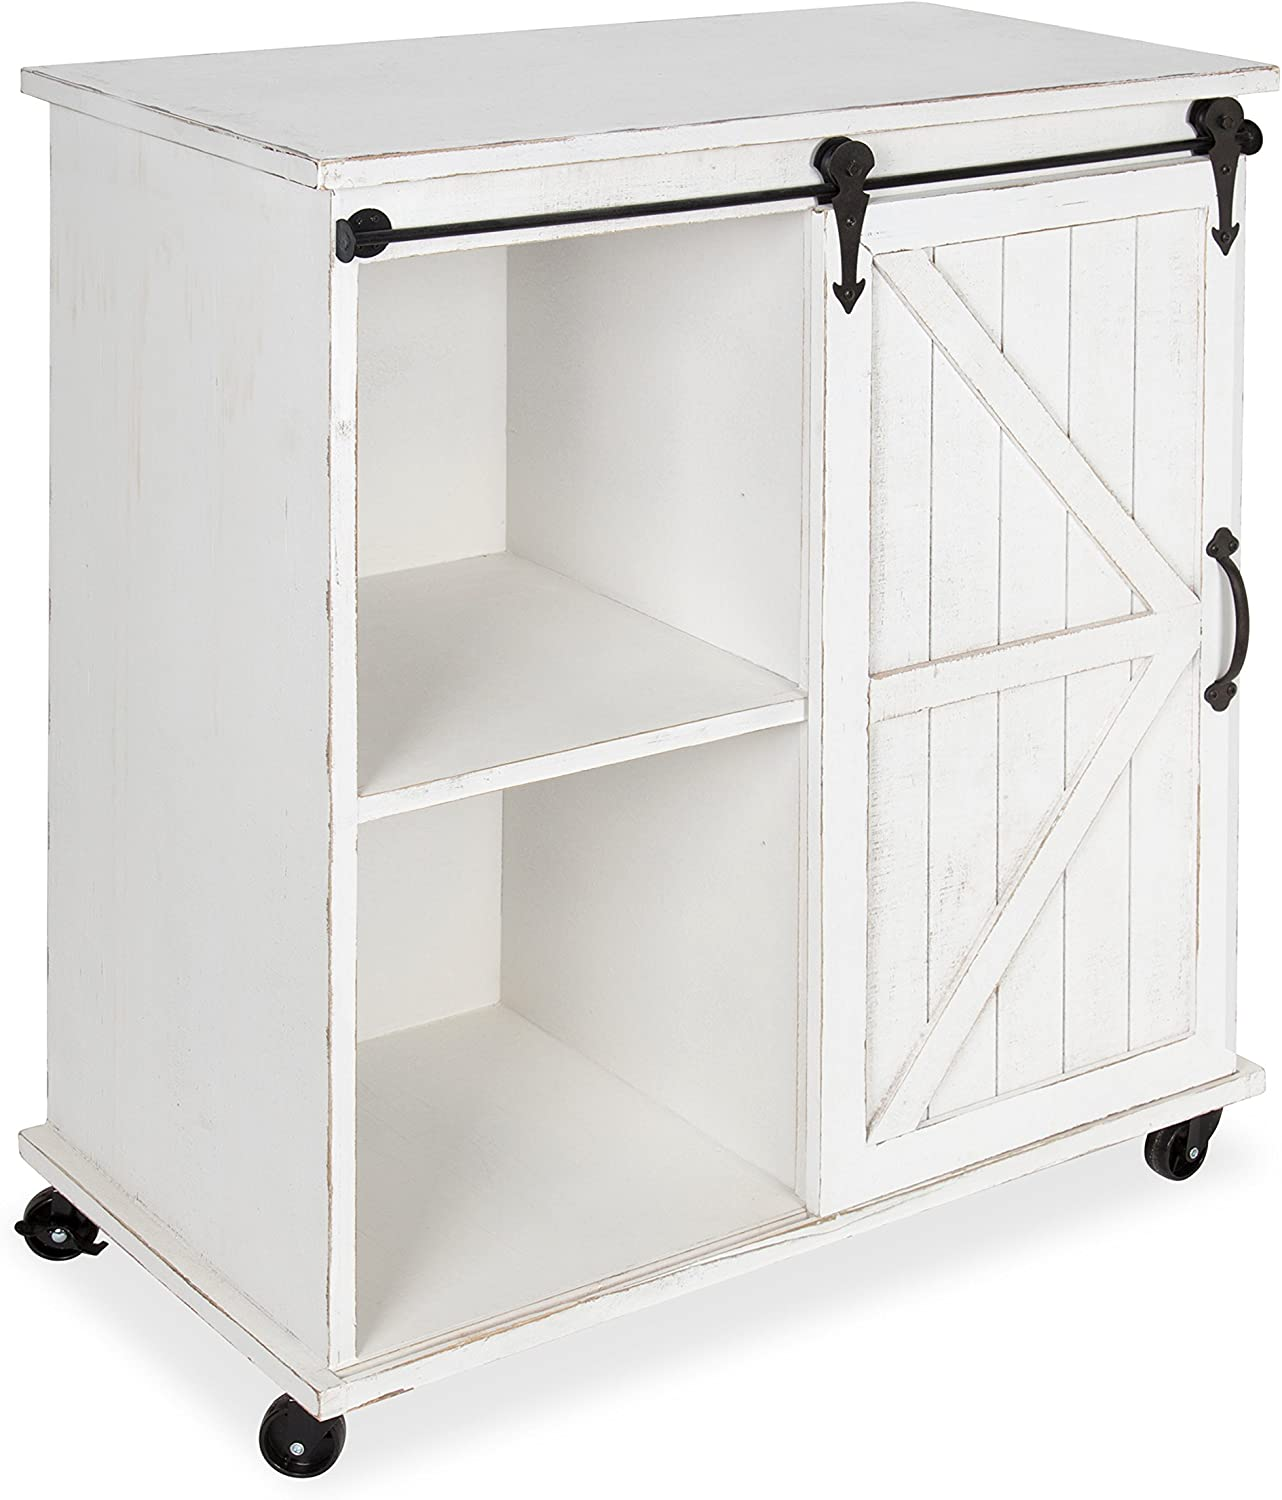 Amazon Com Kate And Laurel Cates Multi Purpose Wooden Rolling Kitchen Cart Storage Cabinet With Sliding Barn Door And Locking Wheels Antique White Furniture Decor